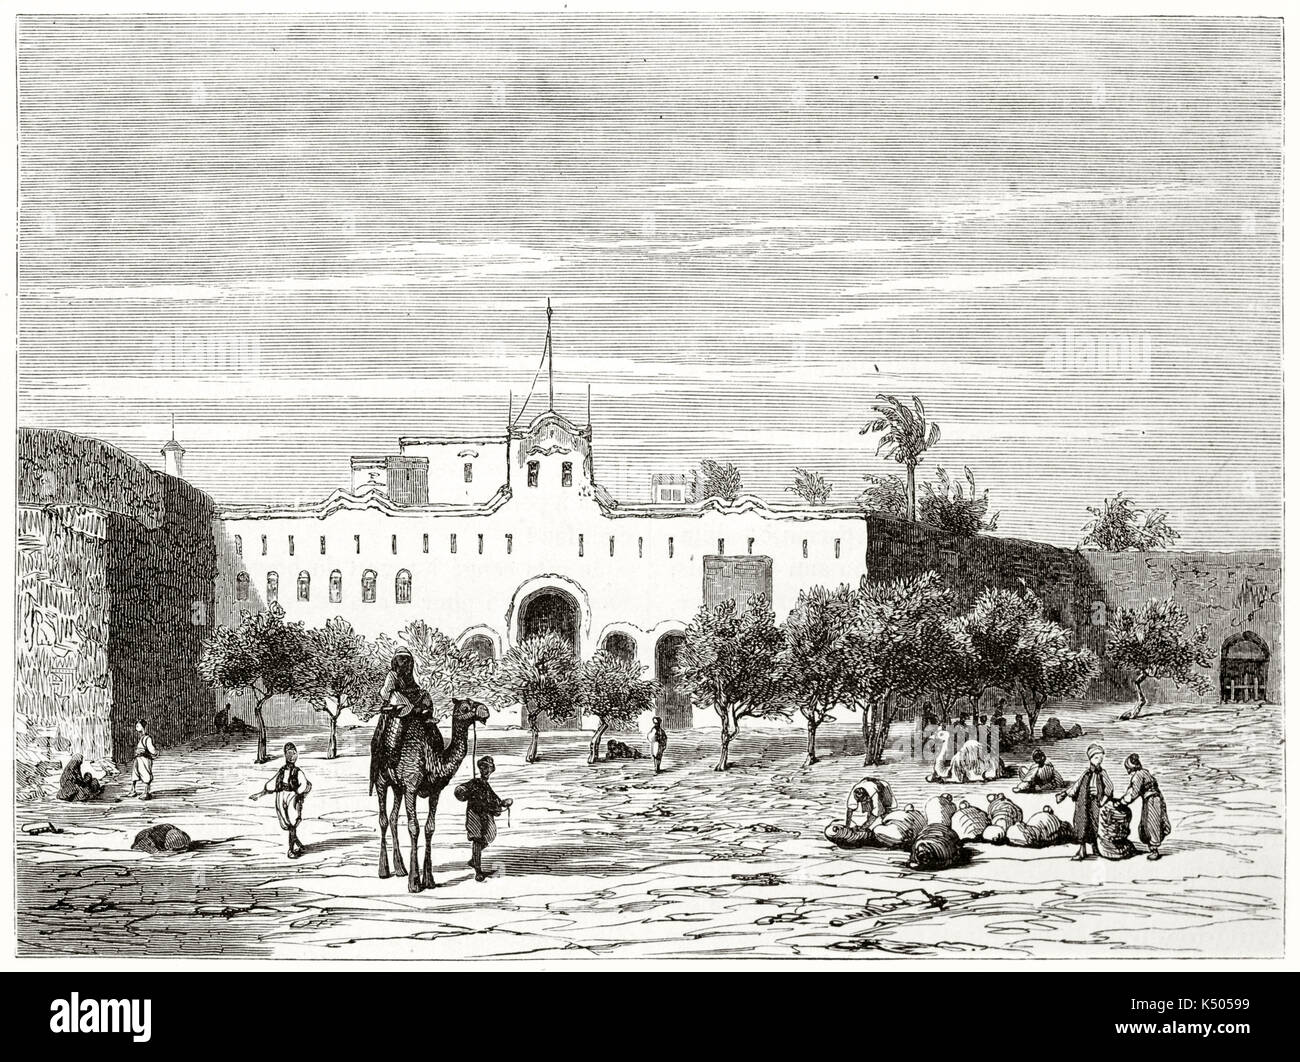 Ancient white colonial edifice in Sudan on a rocky large square with trees and few people. Place de la Mudirie in Khartoum Sudan. By Girardet after Lejean published on Le Tour du Monde Paris 1862 - Stock Image